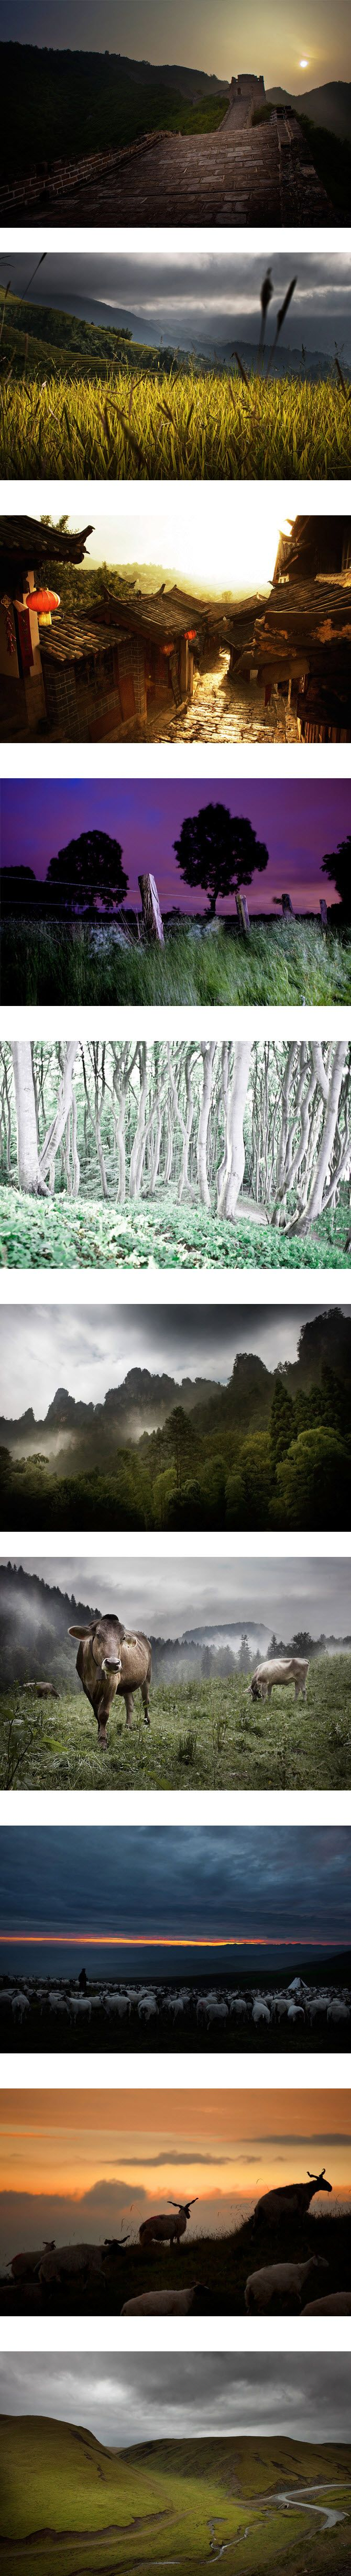 Landscape Photography by Florian Ritter